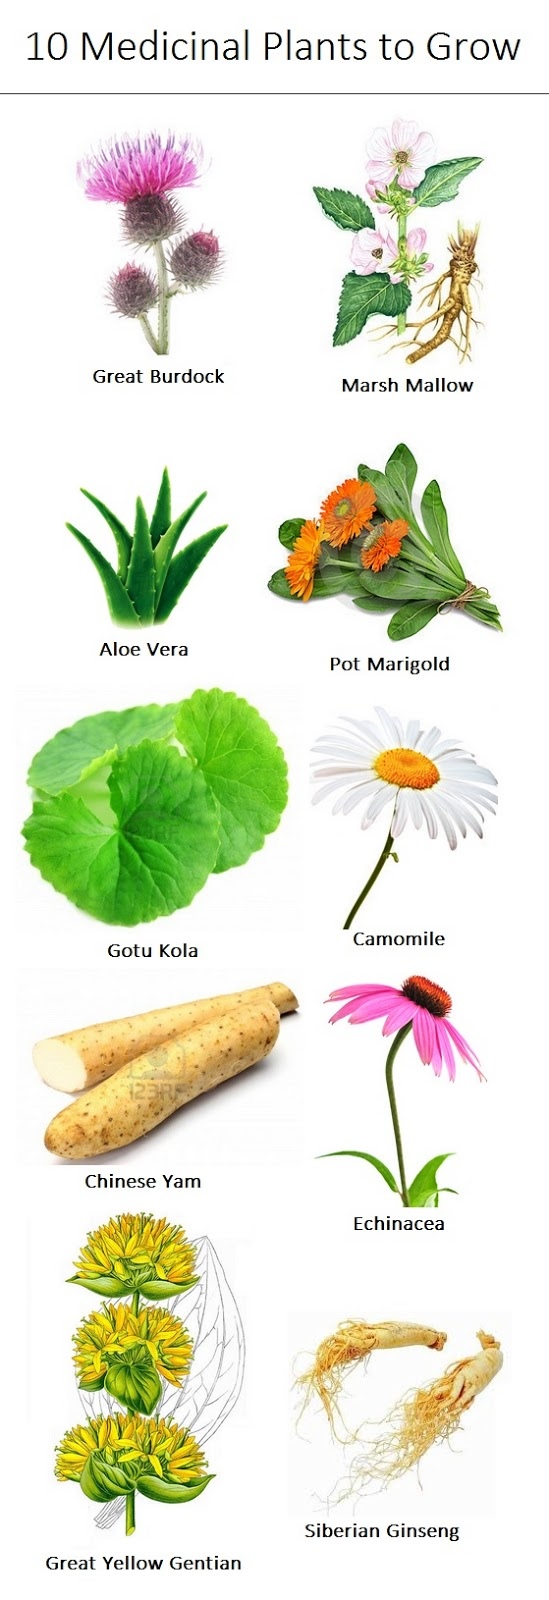 5 Herbs to Support the Nervous System